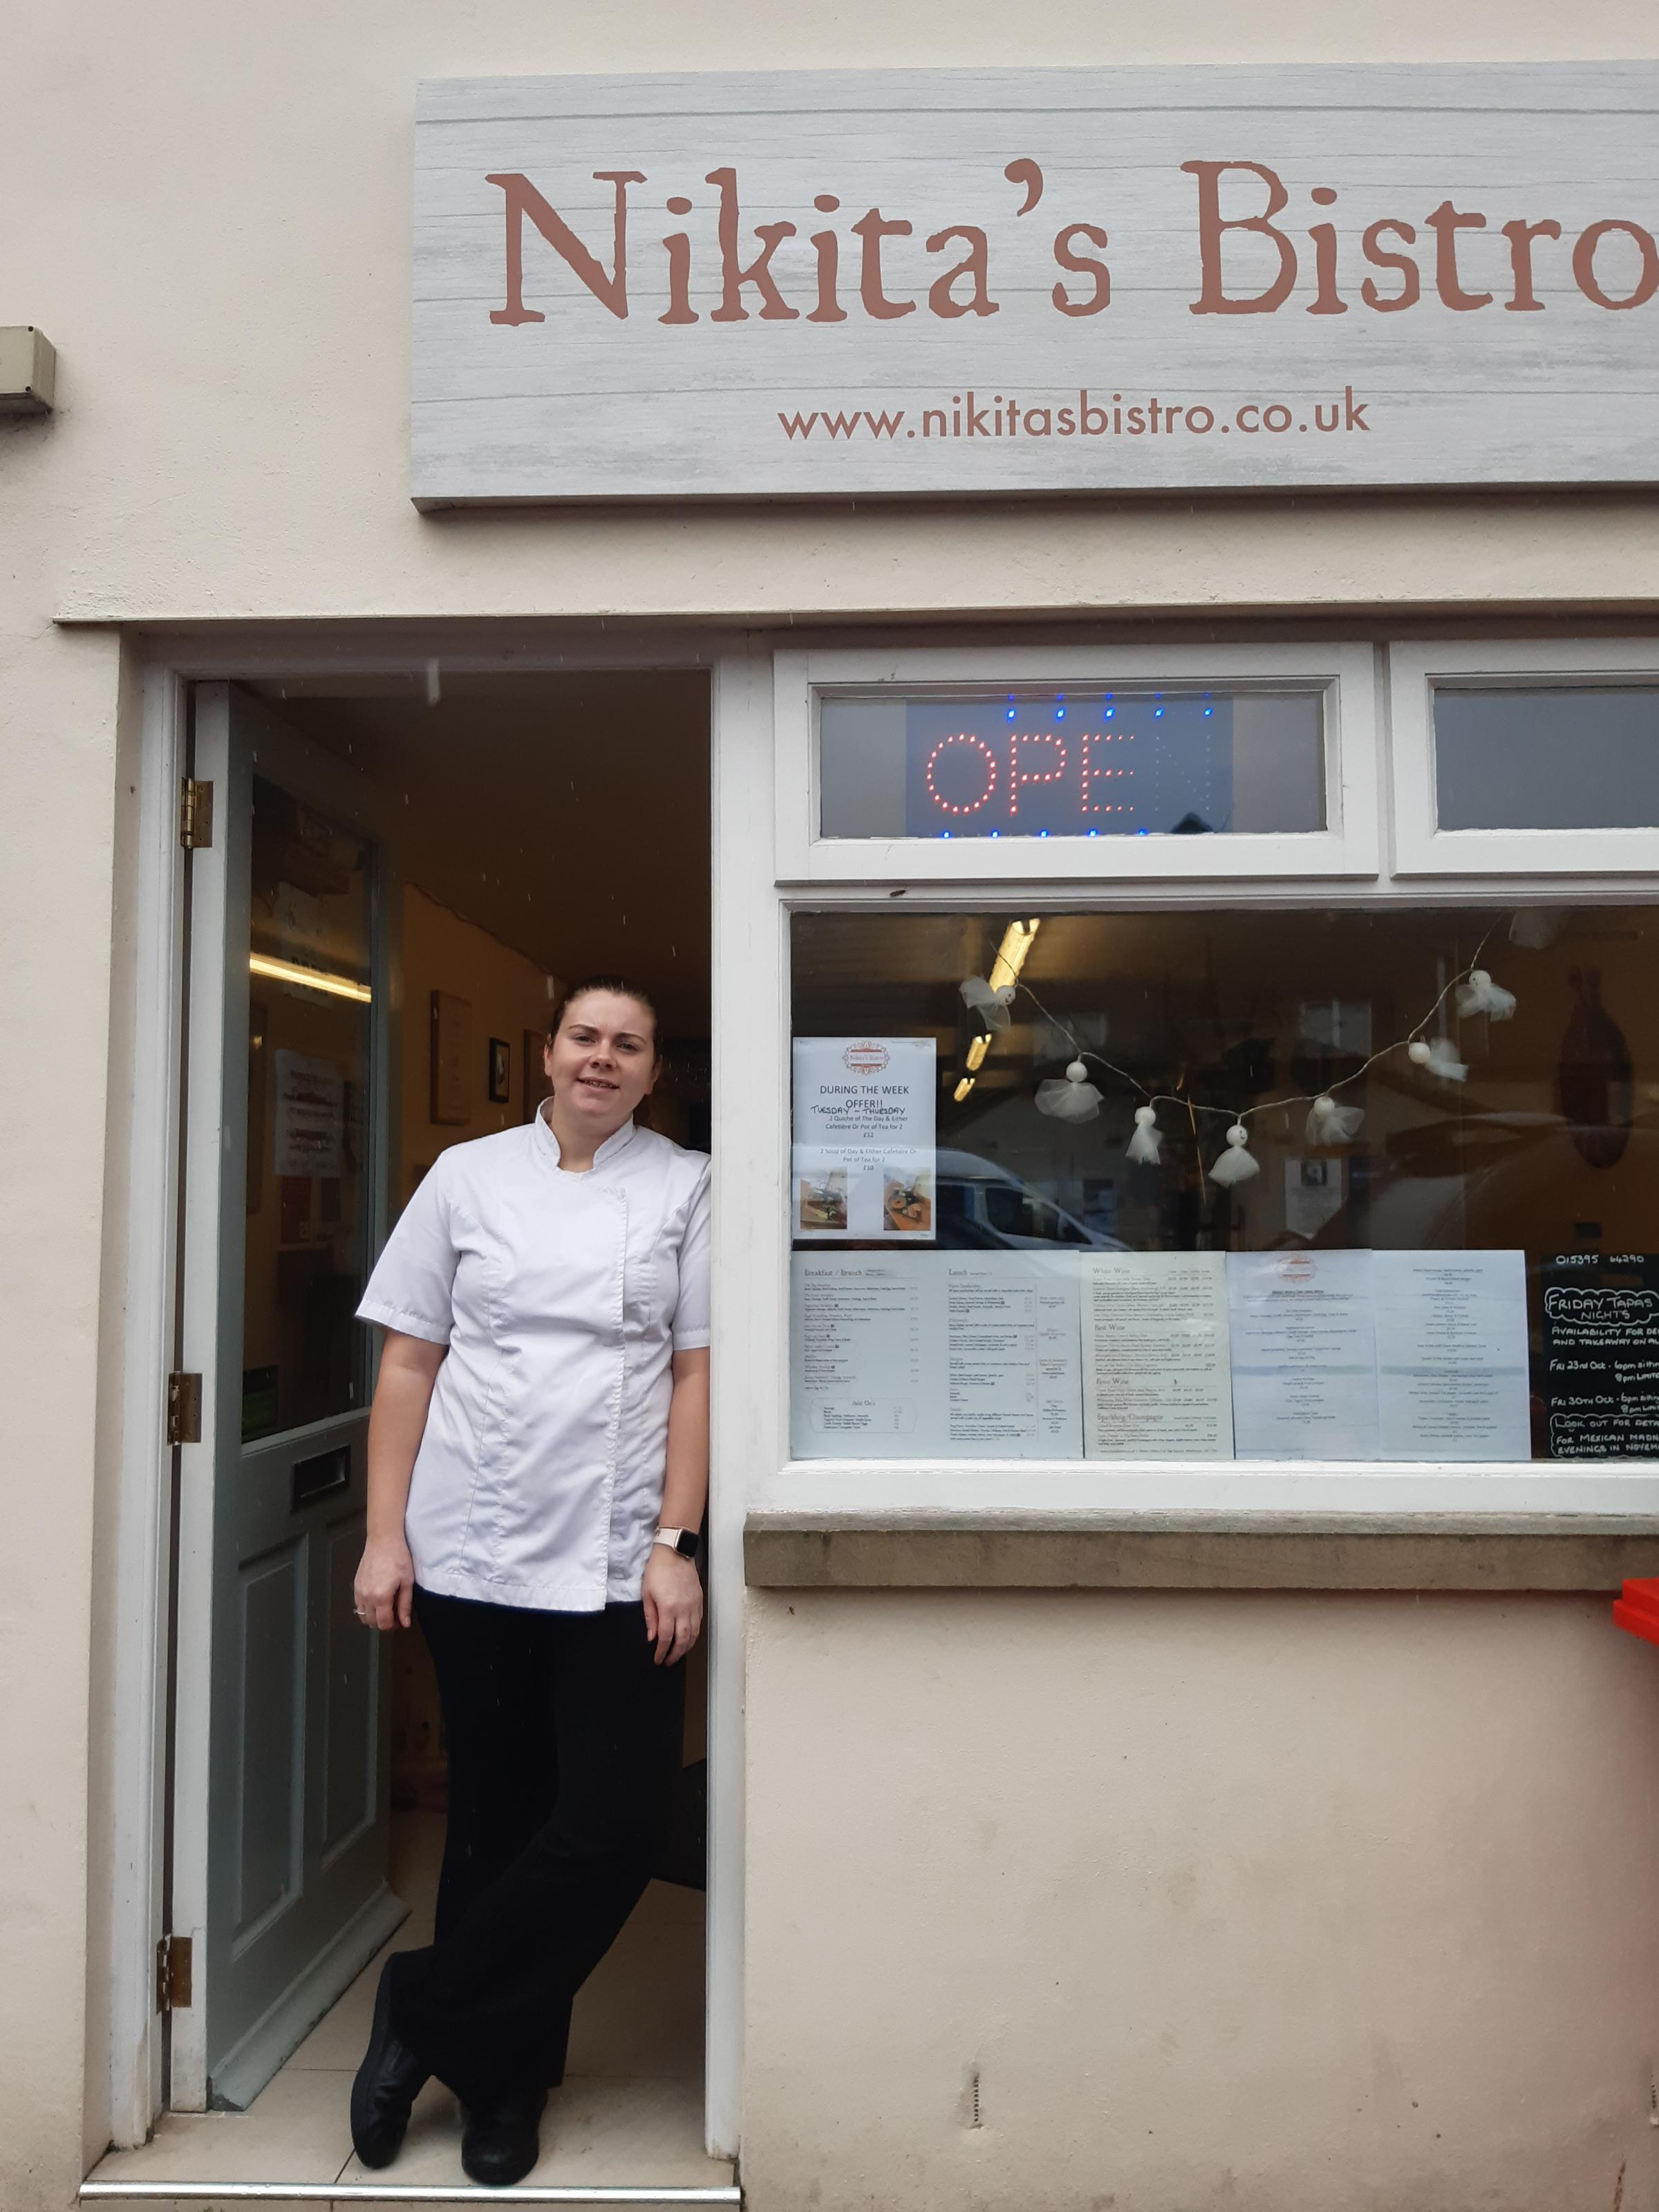 New bistro has proved to be a big hit with its homemade goods and themed dinner nights